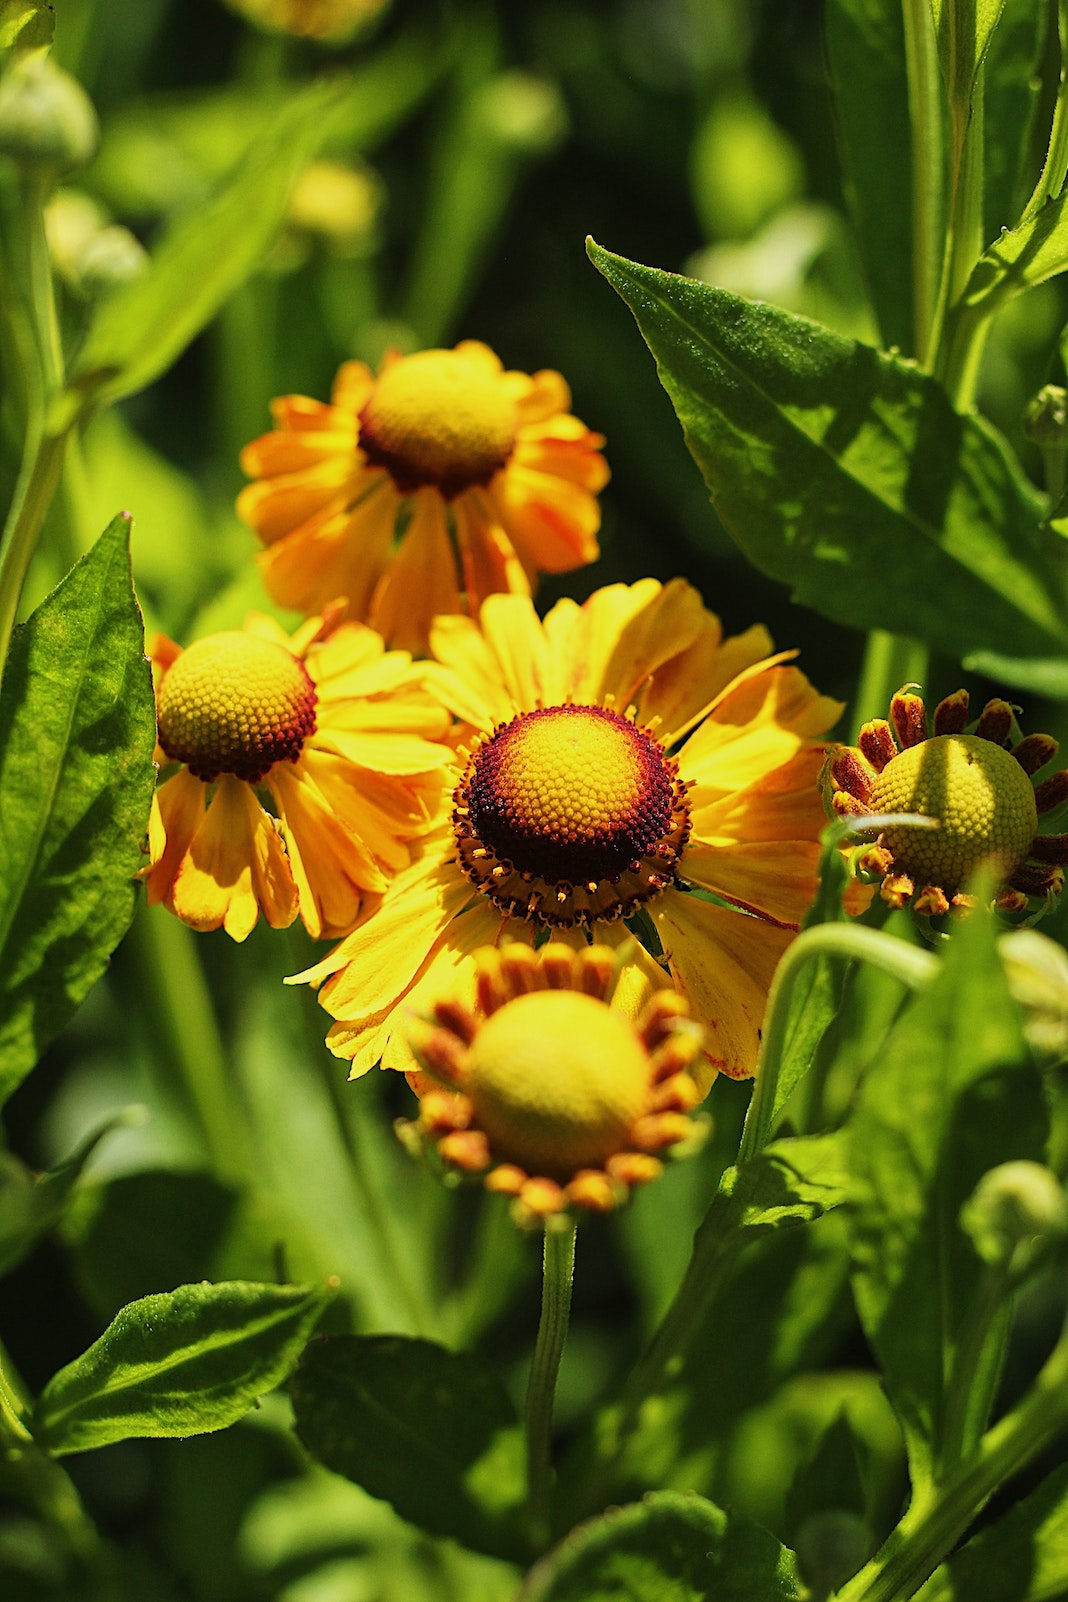 Bright yellow flowers with pollen